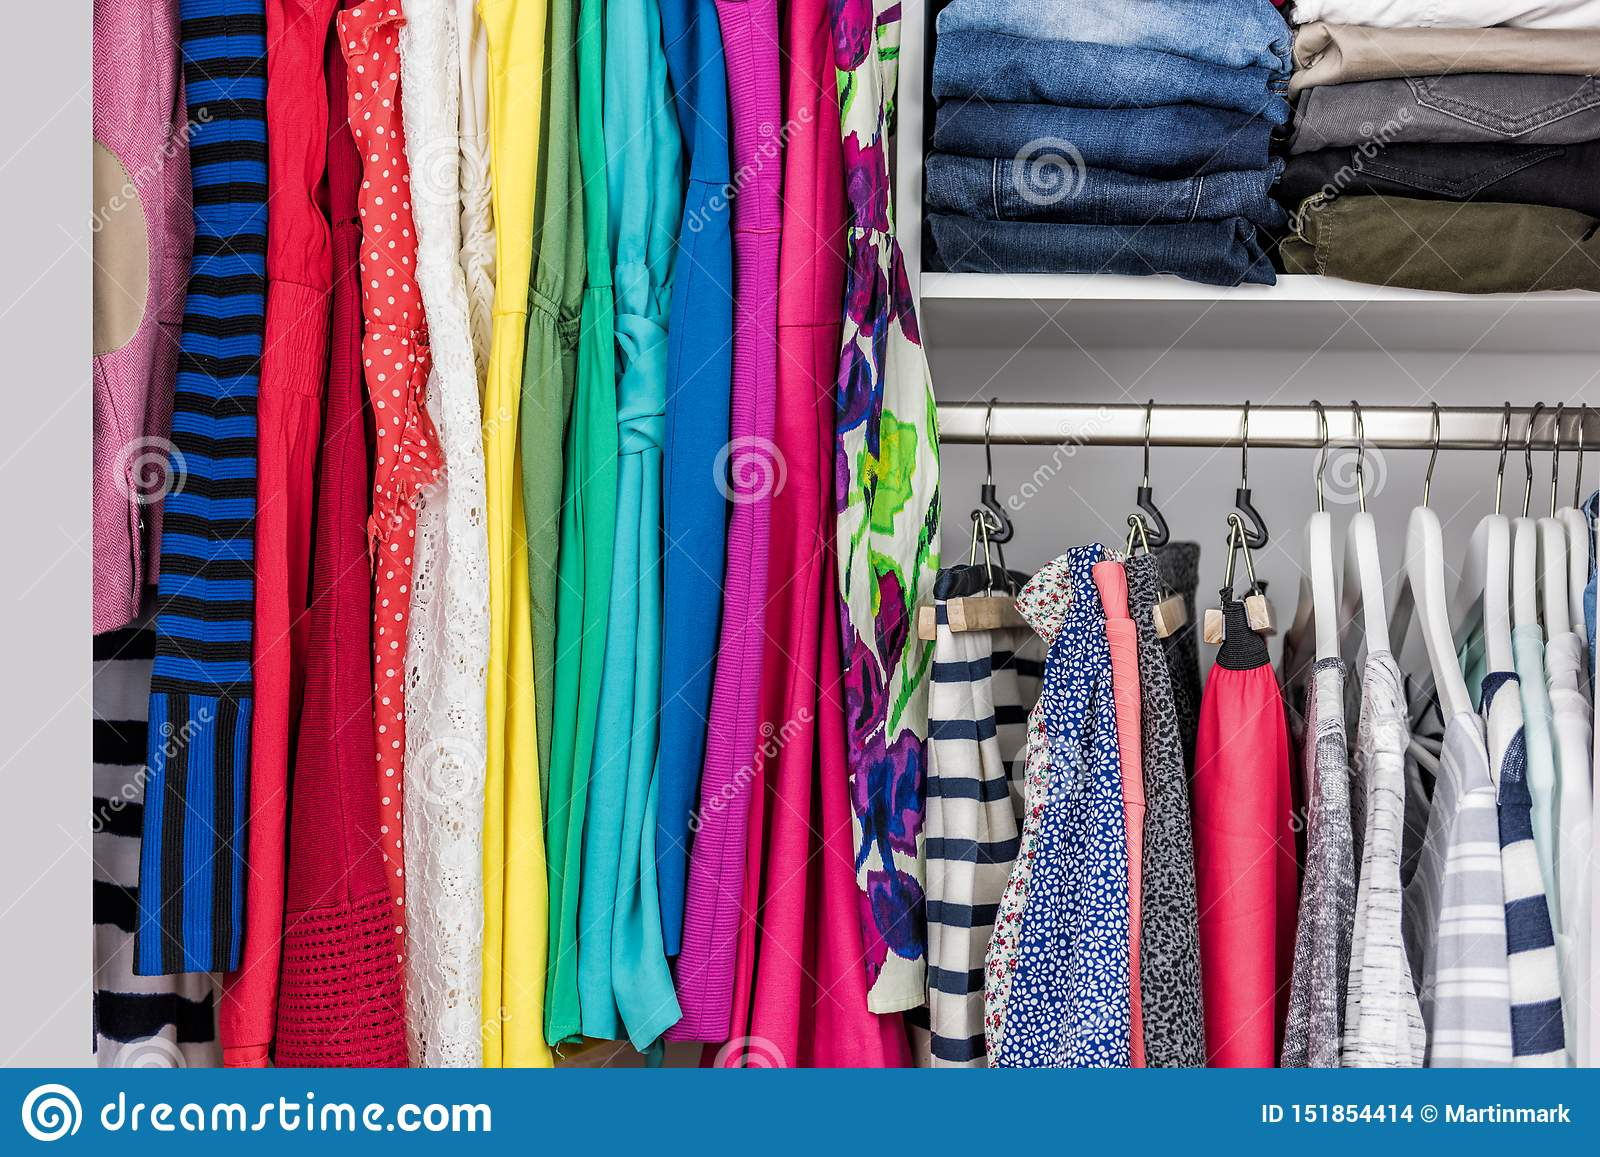 Organized Home Clothing Closet Or Shopping Display Stock